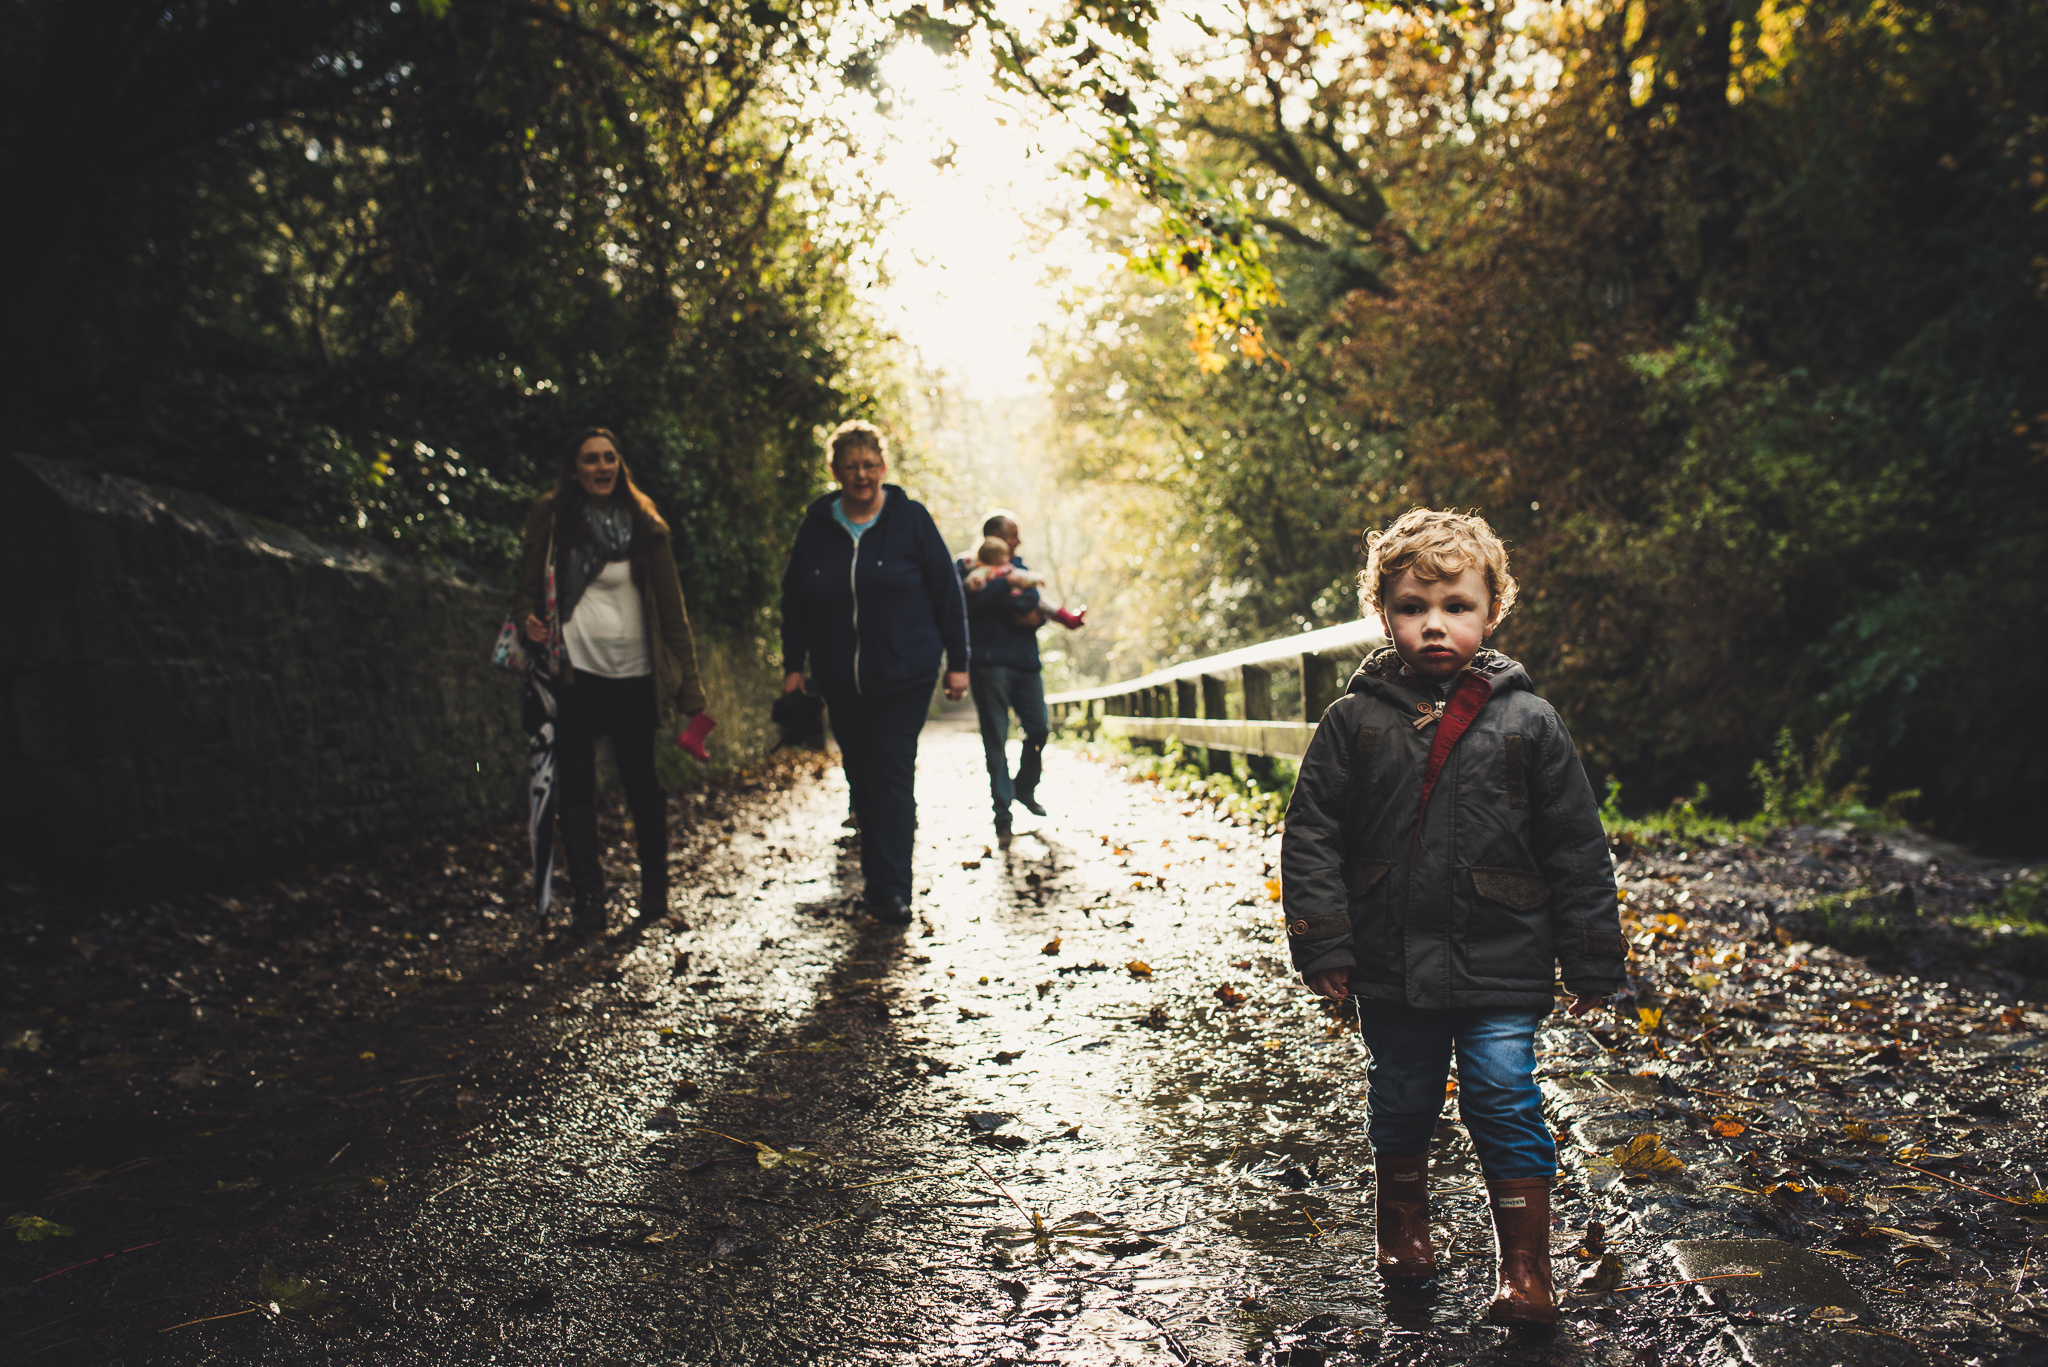 jesmond dene photographer, jesmond dene family photographer